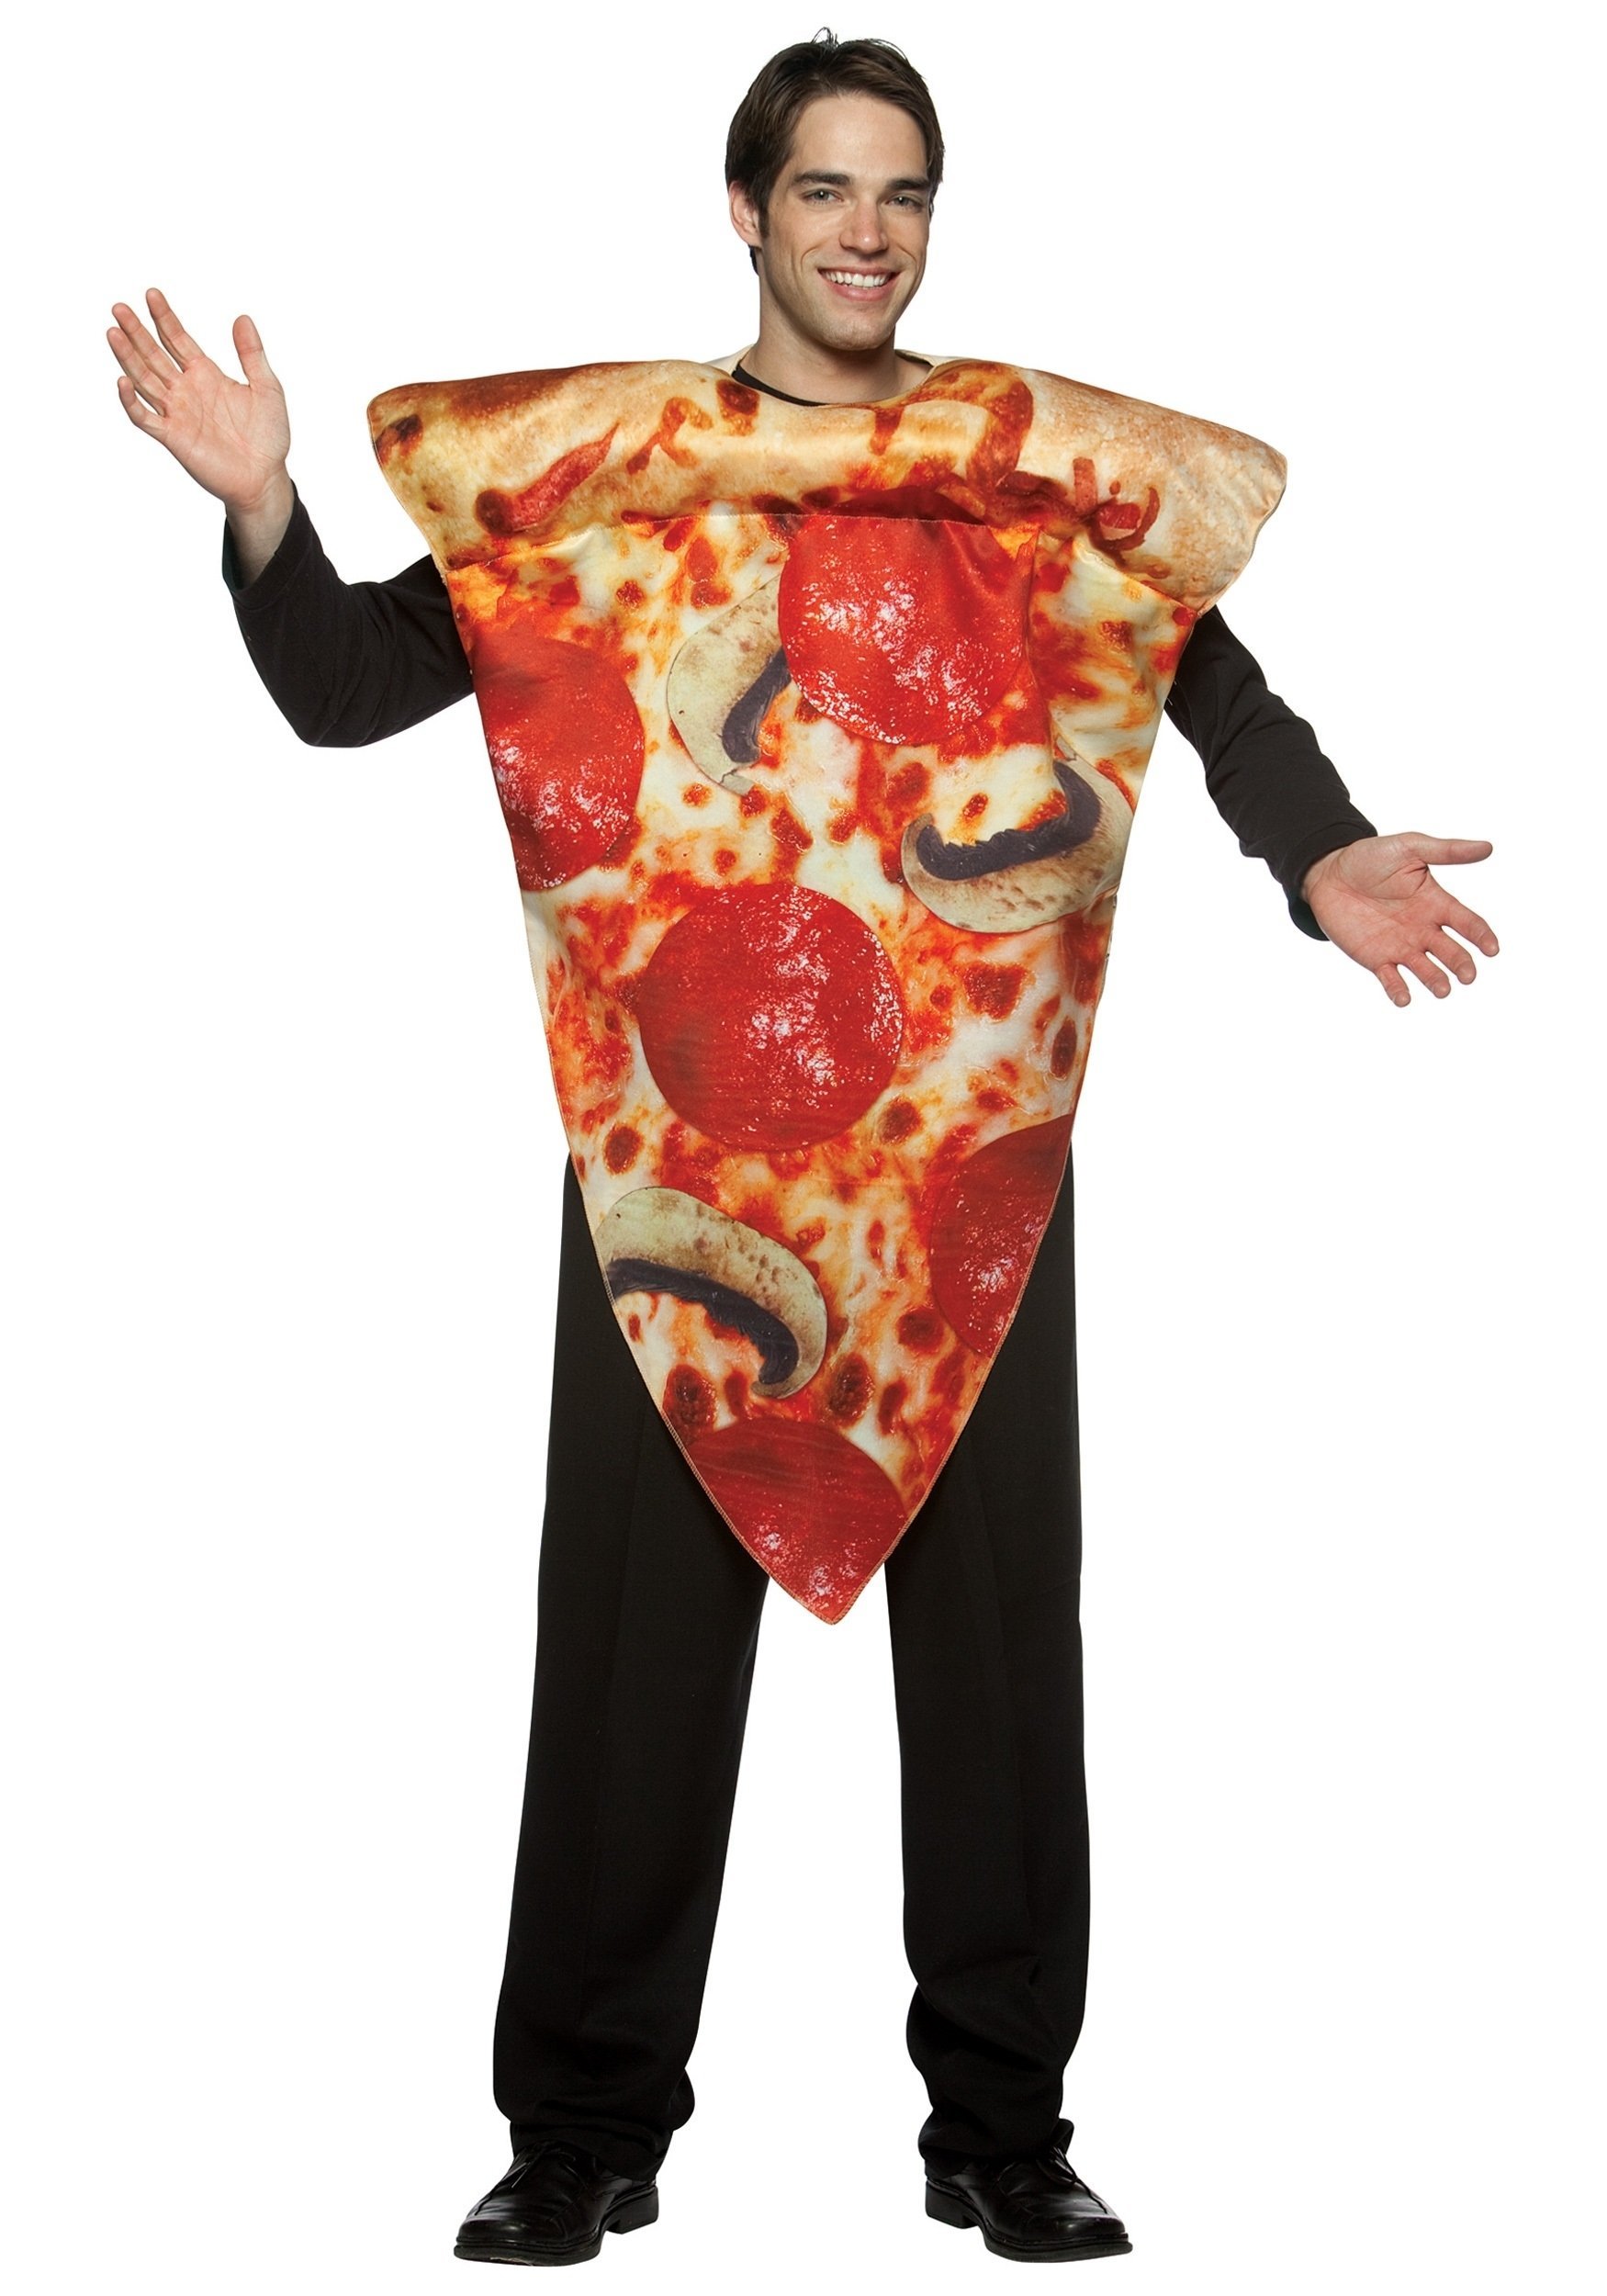 10 Stylish Ideas For Adult Halloween Costumes pizza slice costume 2020